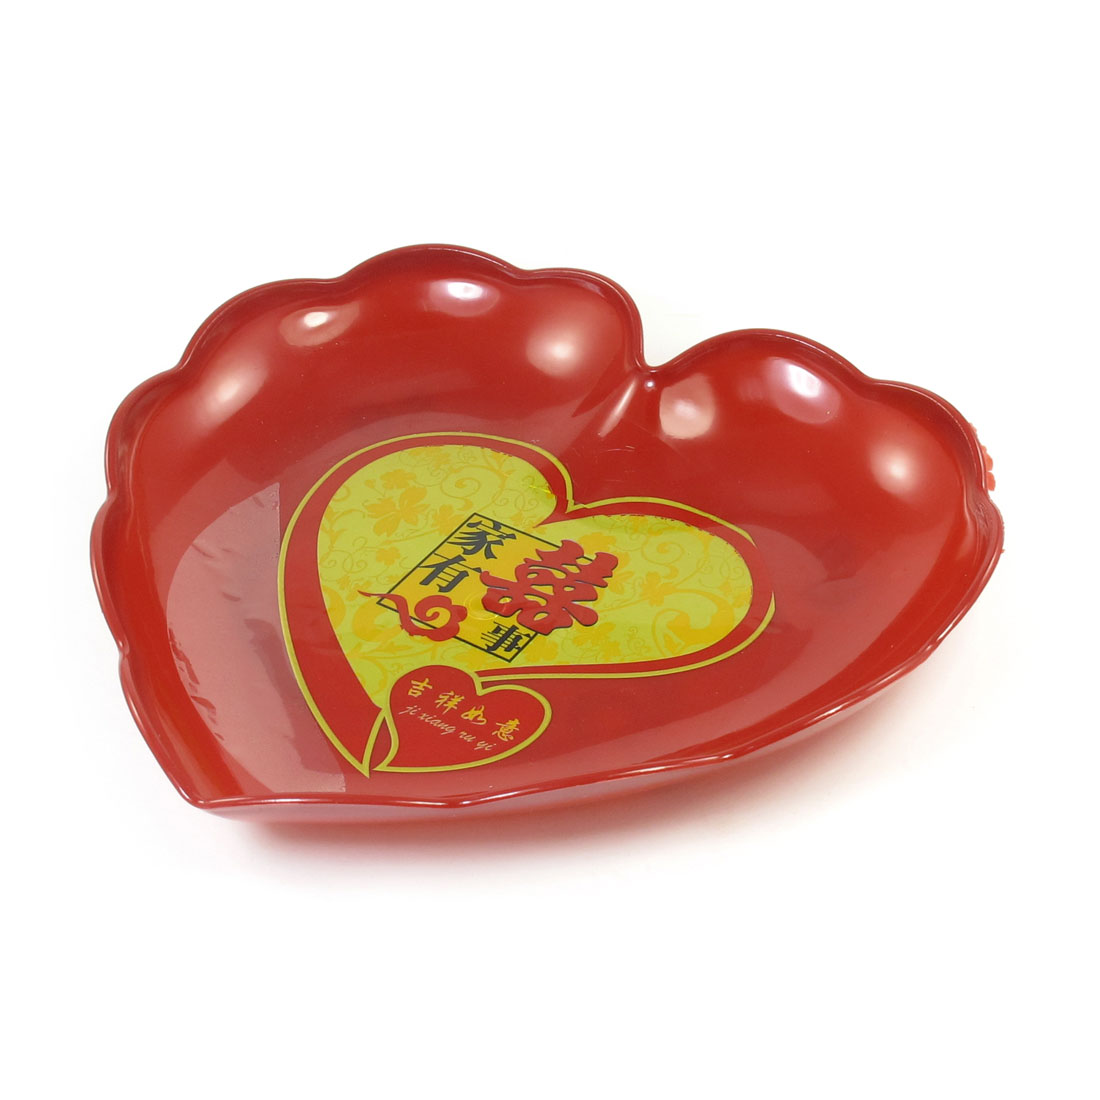 Family Kitchenware Red Heart Design Fruit Tray Plate Vegetable Container